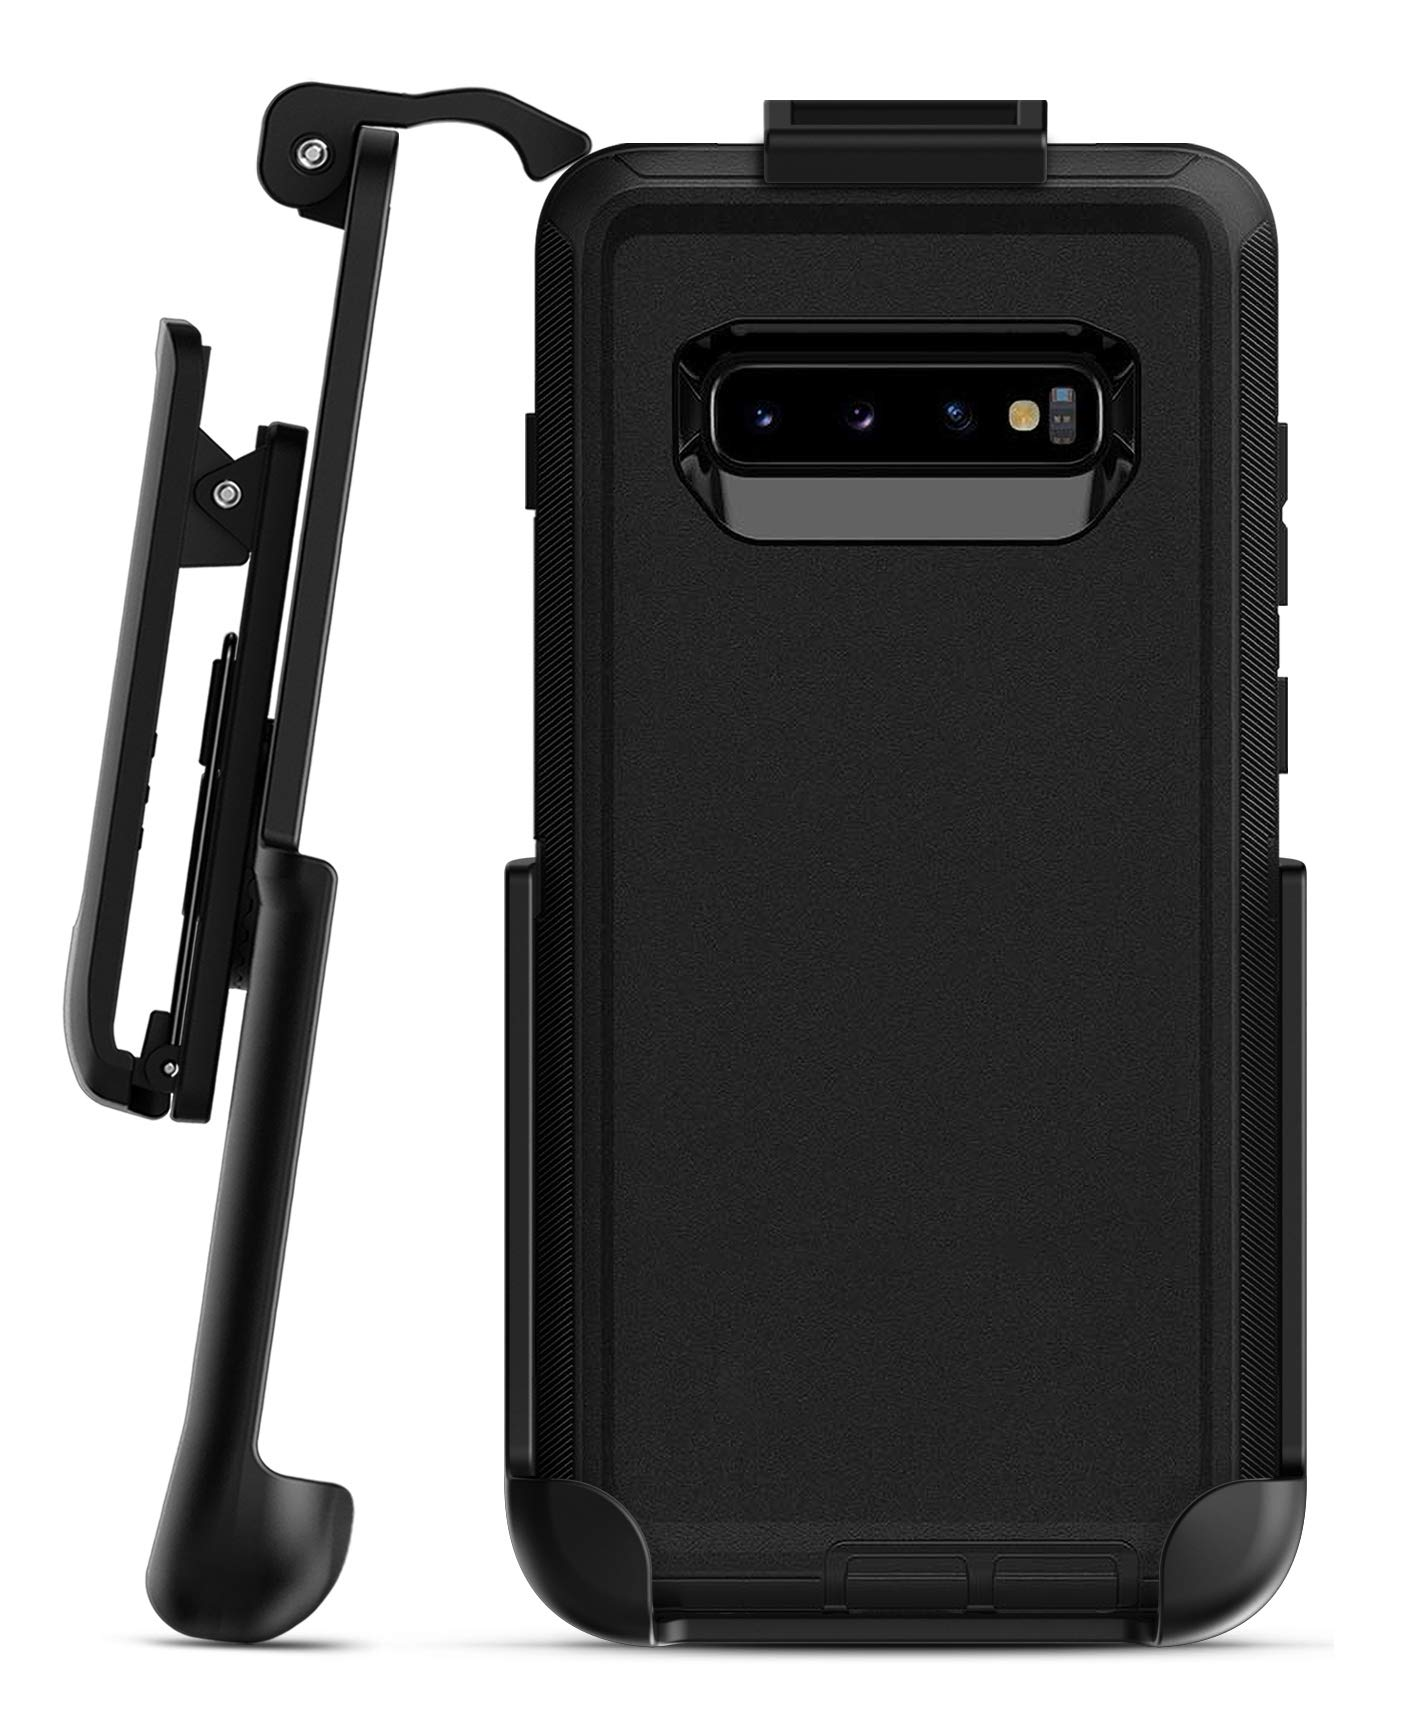 reputable site 1292d 03e37 Galaxy S10 Plus Otterbox Defender Holster Black